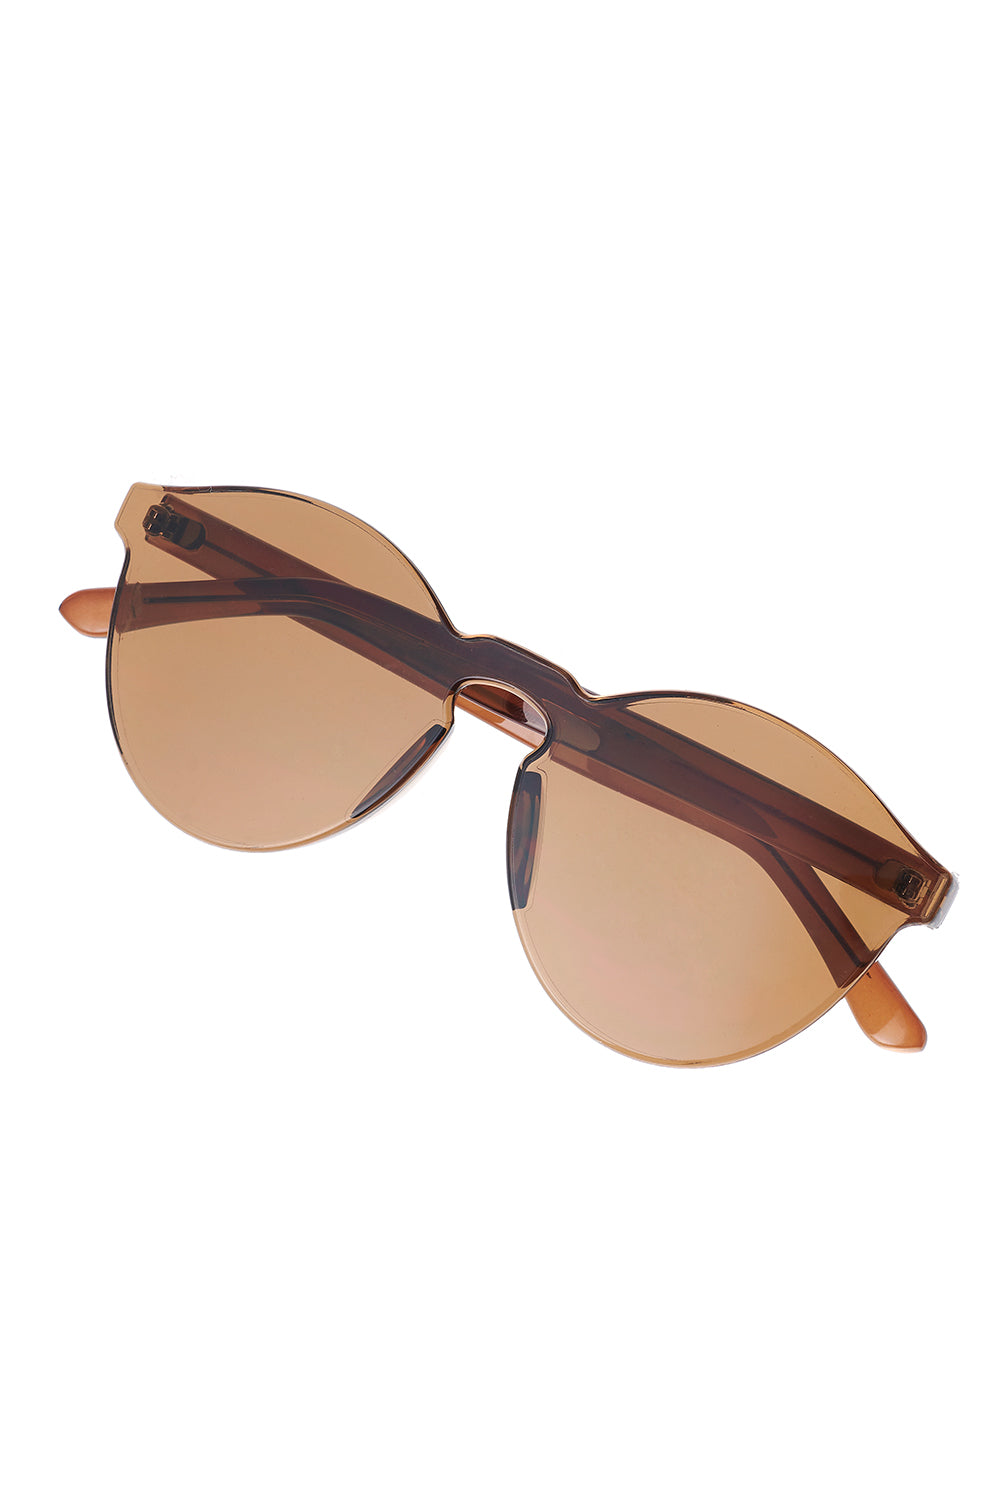 Whole Tinted Sunglasses-Brown